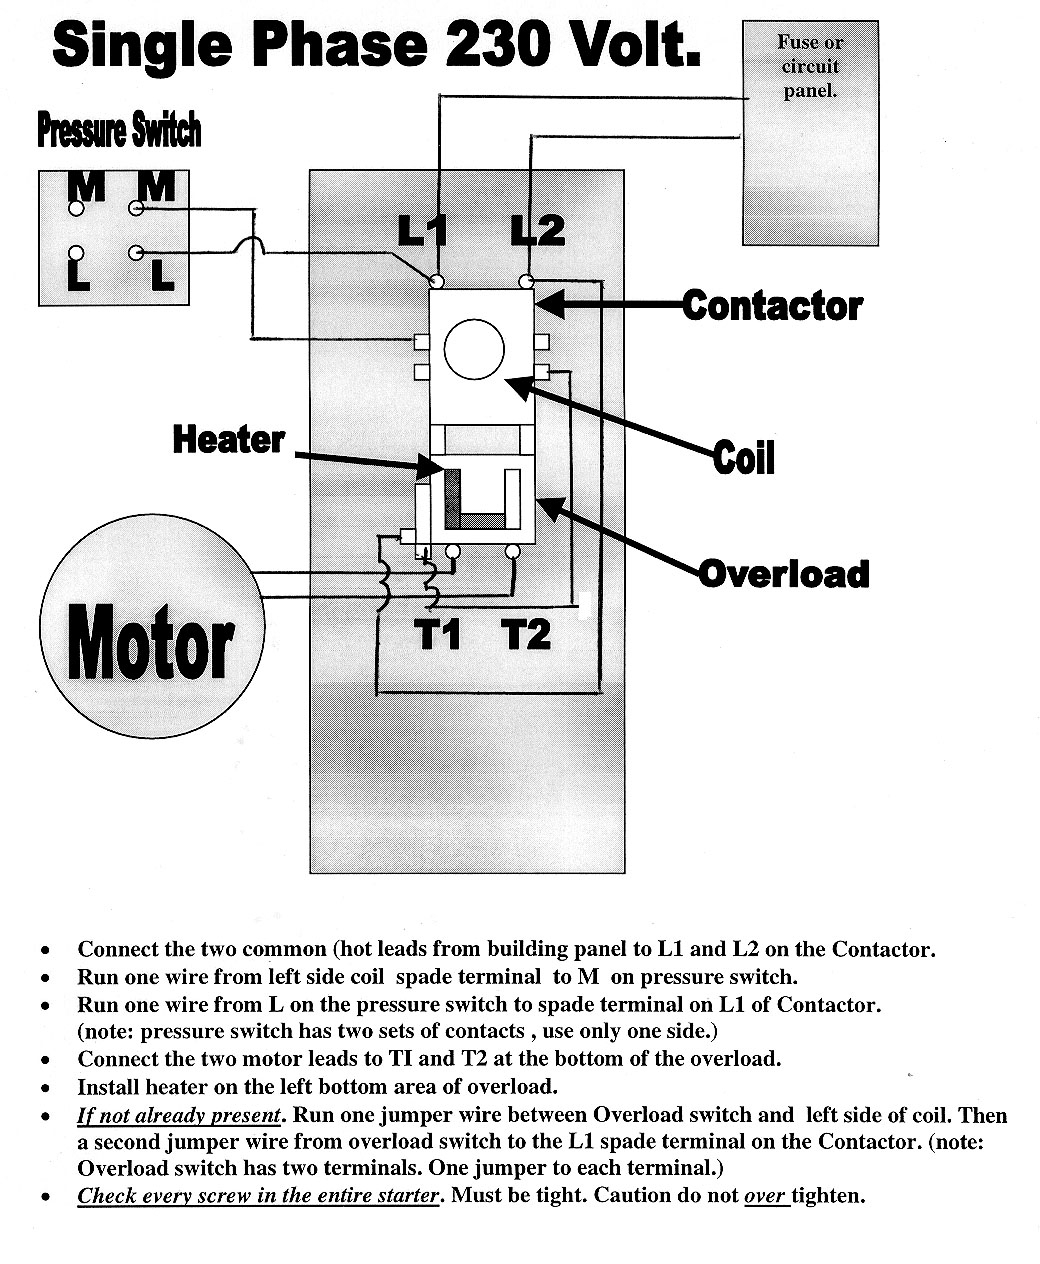 Square D Starters - Square D Motor Starter Wiring Diagram